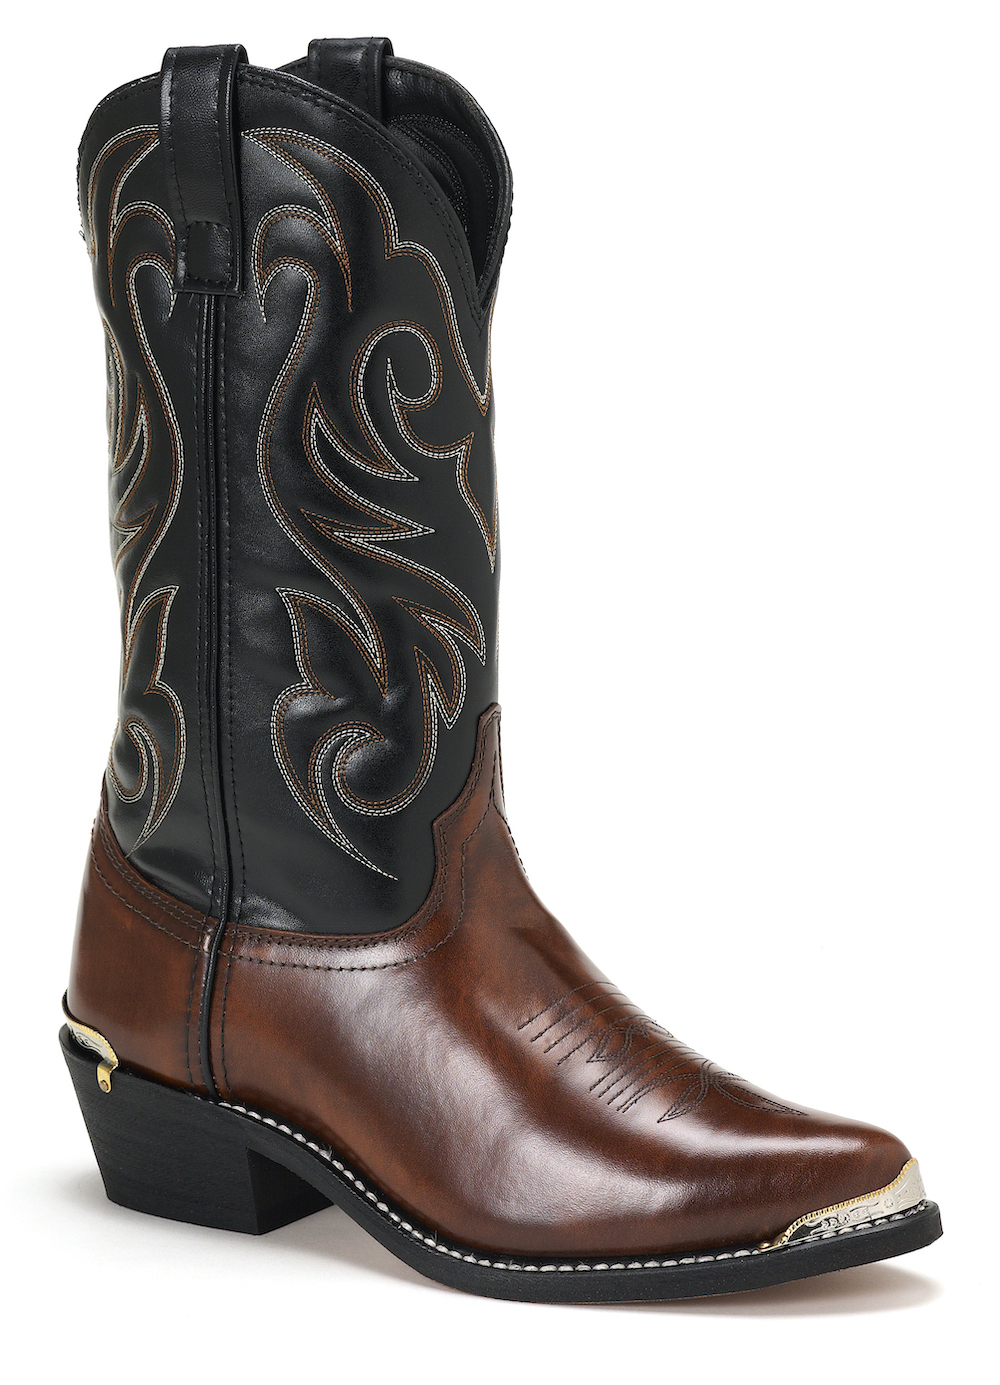 Men's Western Cowboy Boots   Afterpay